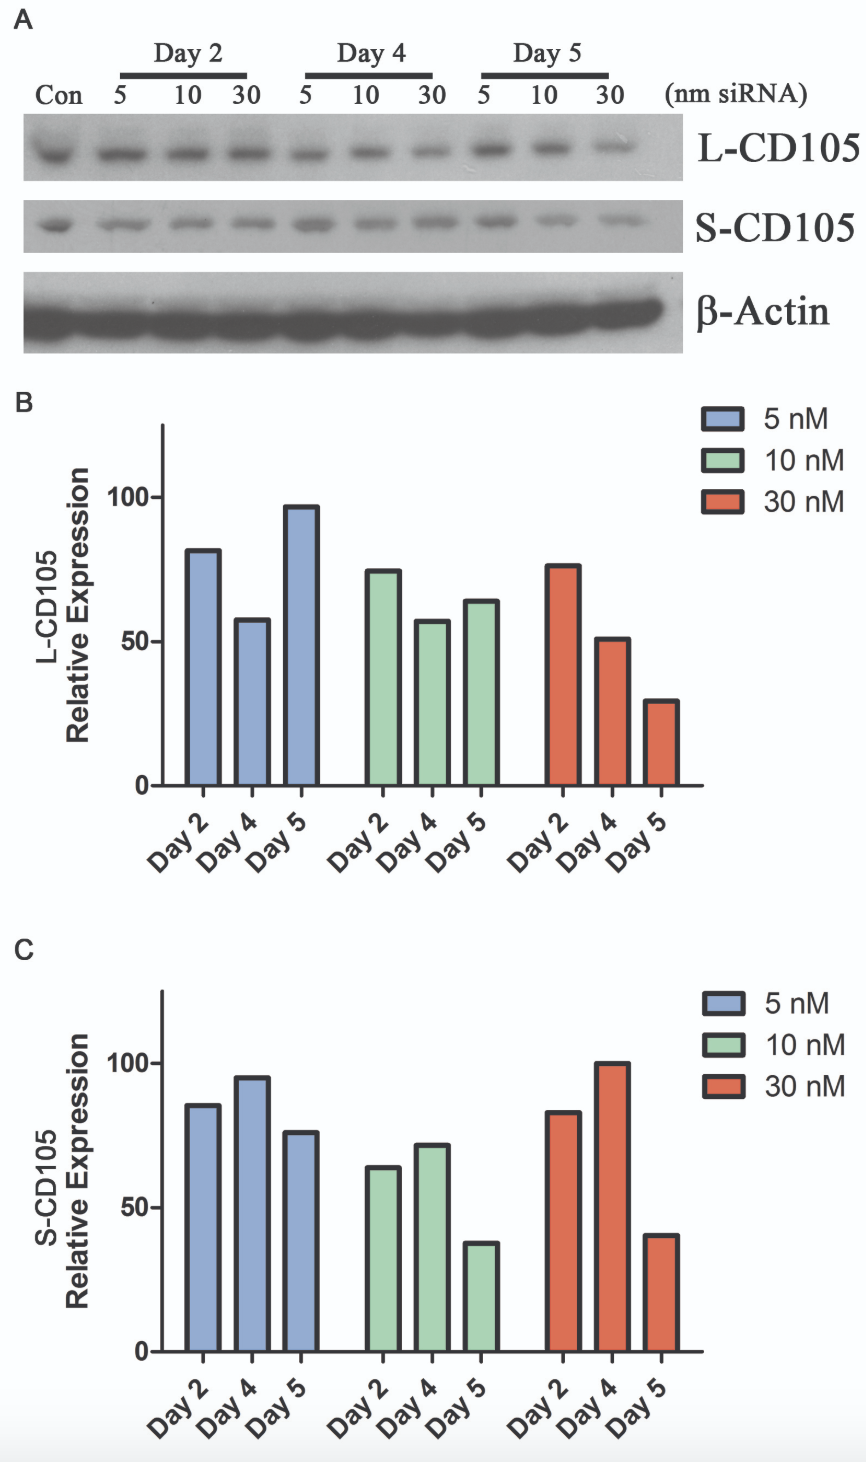 Figure 2. Optimizing the siRNA transfection protocol.  A) mAo progenitors were transfected with a range of CD105 siRNA concentrations (5-30 nmole) and transfection efficiency on days 2, 4, and 5 post-transfection was confirmed by Western blot. B-C) Densitometry was used to quantify expression of the long (B) and short (C) forms of CD105 at the protein level.